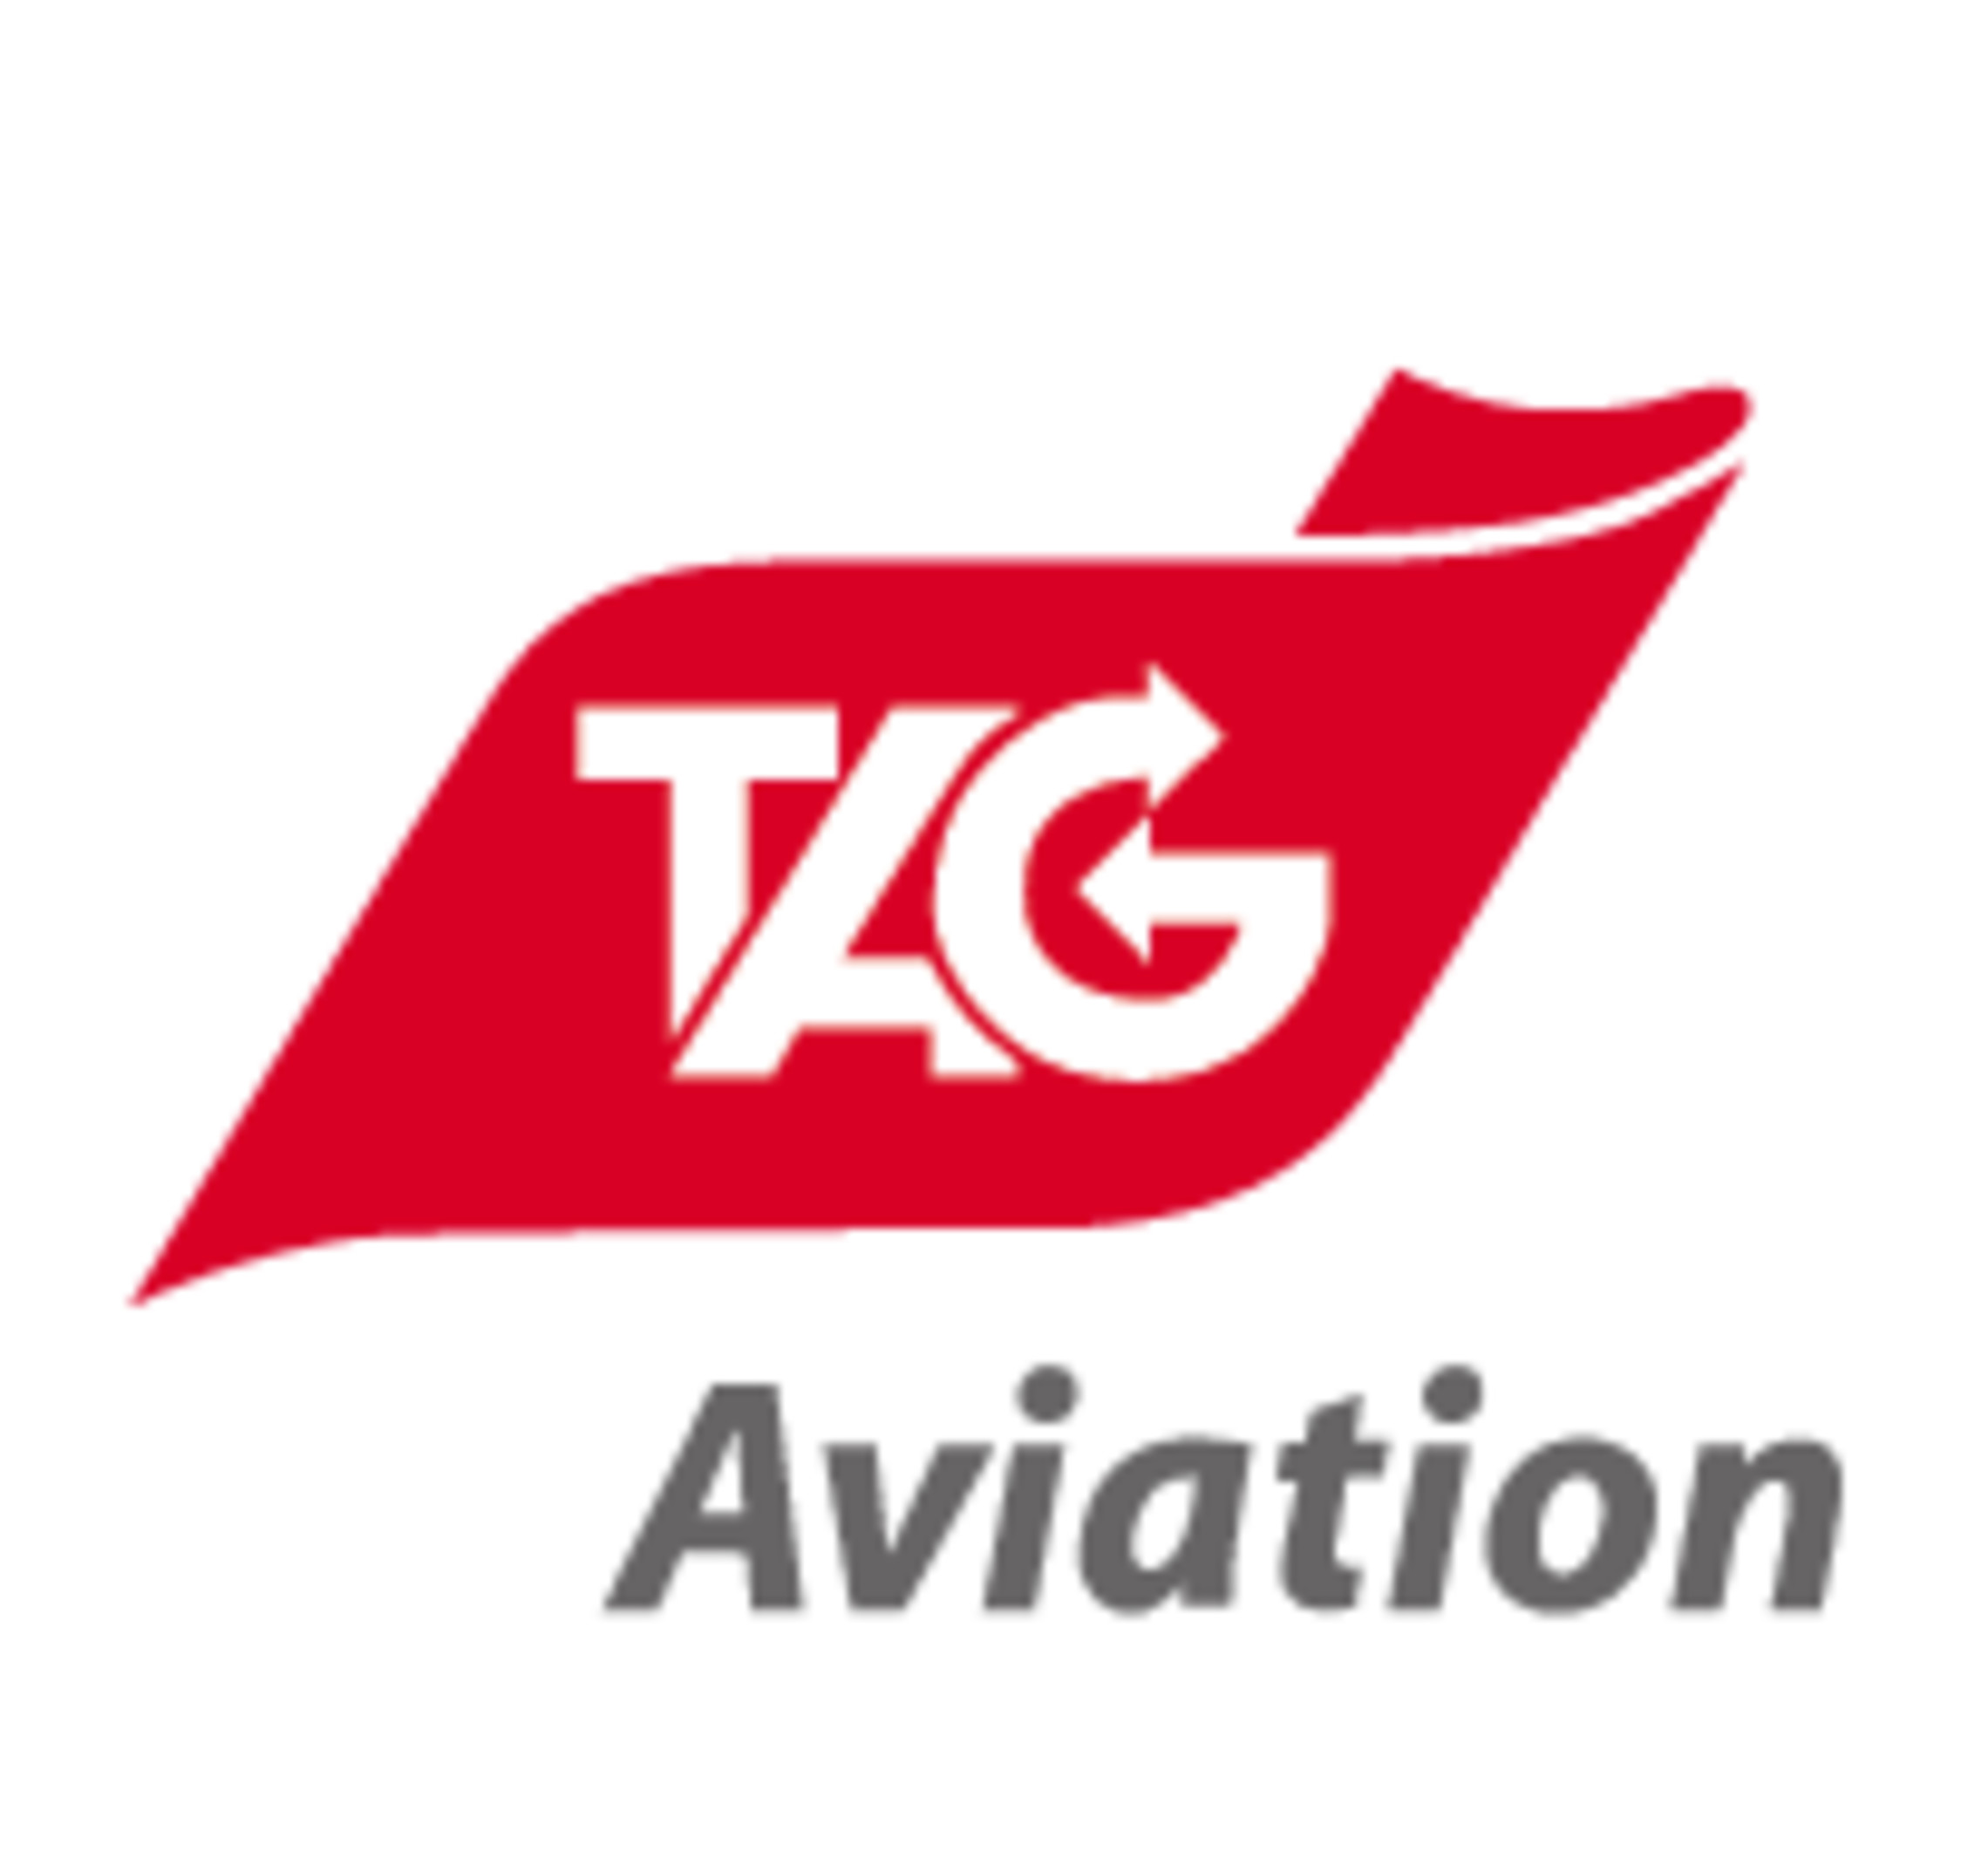 tag aviation asia- company logo